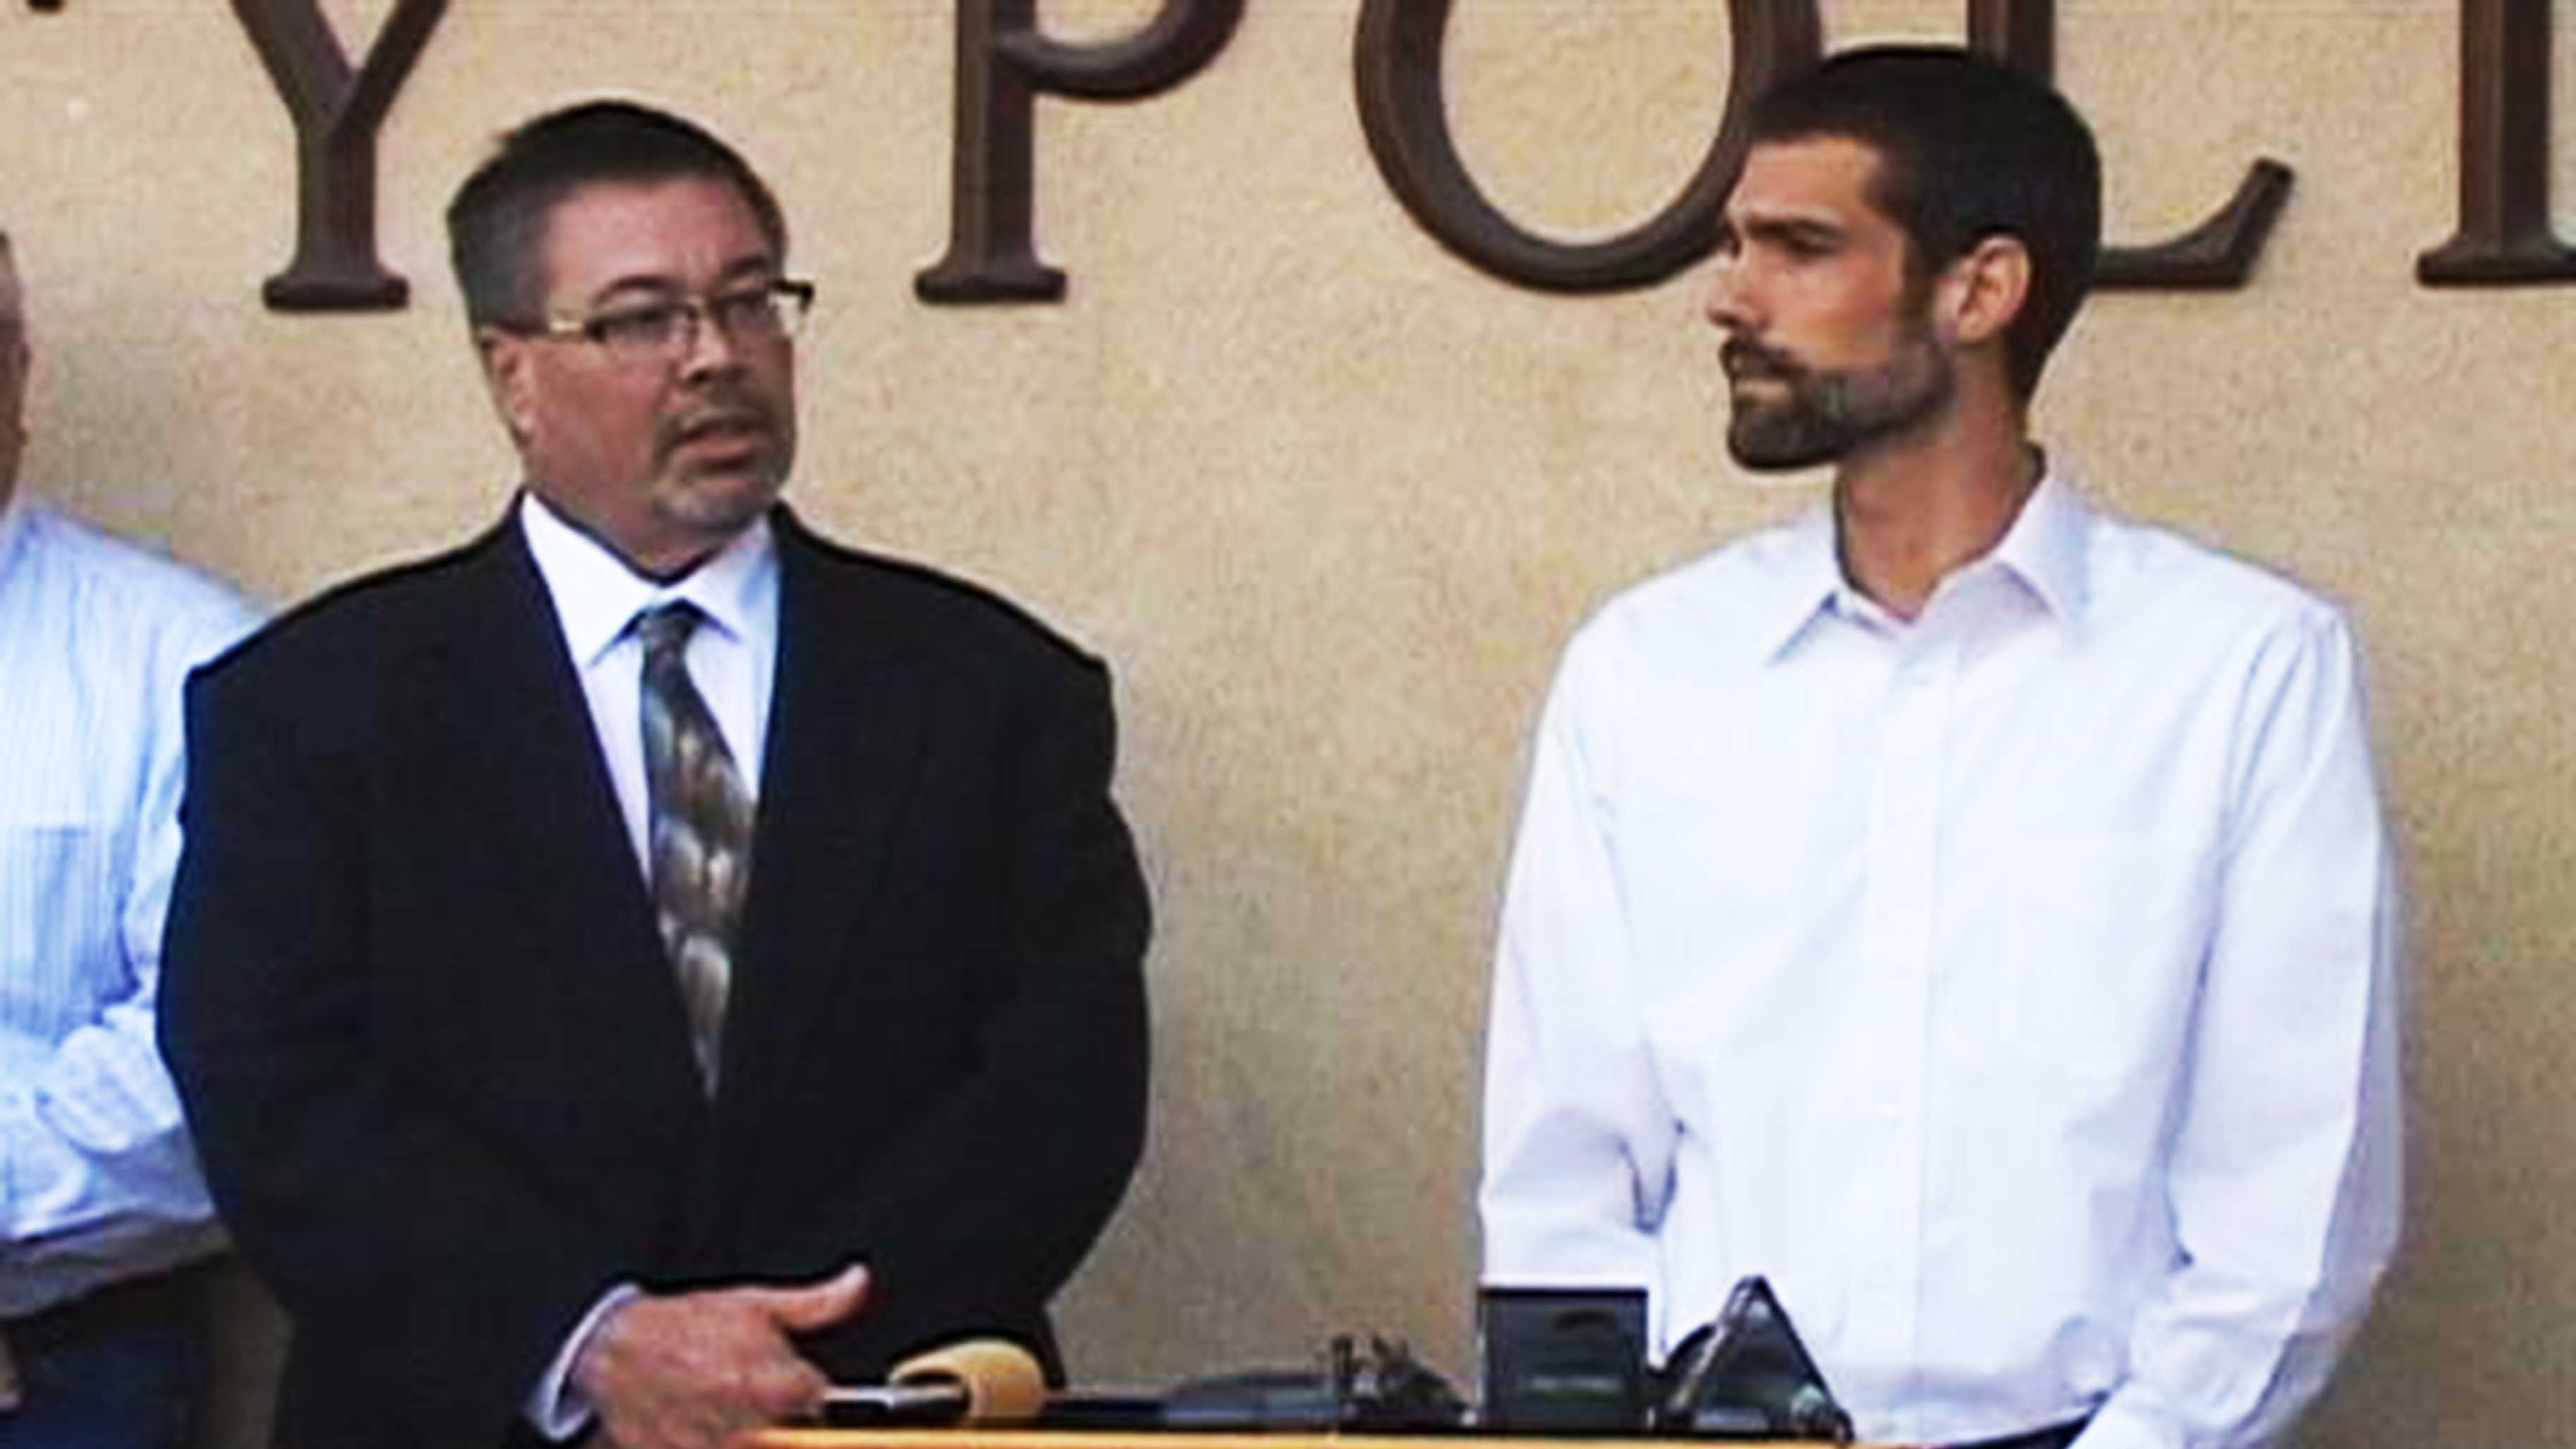 King City Mayor Robert Cullen, right, speaks at a press conference on the King City bust.